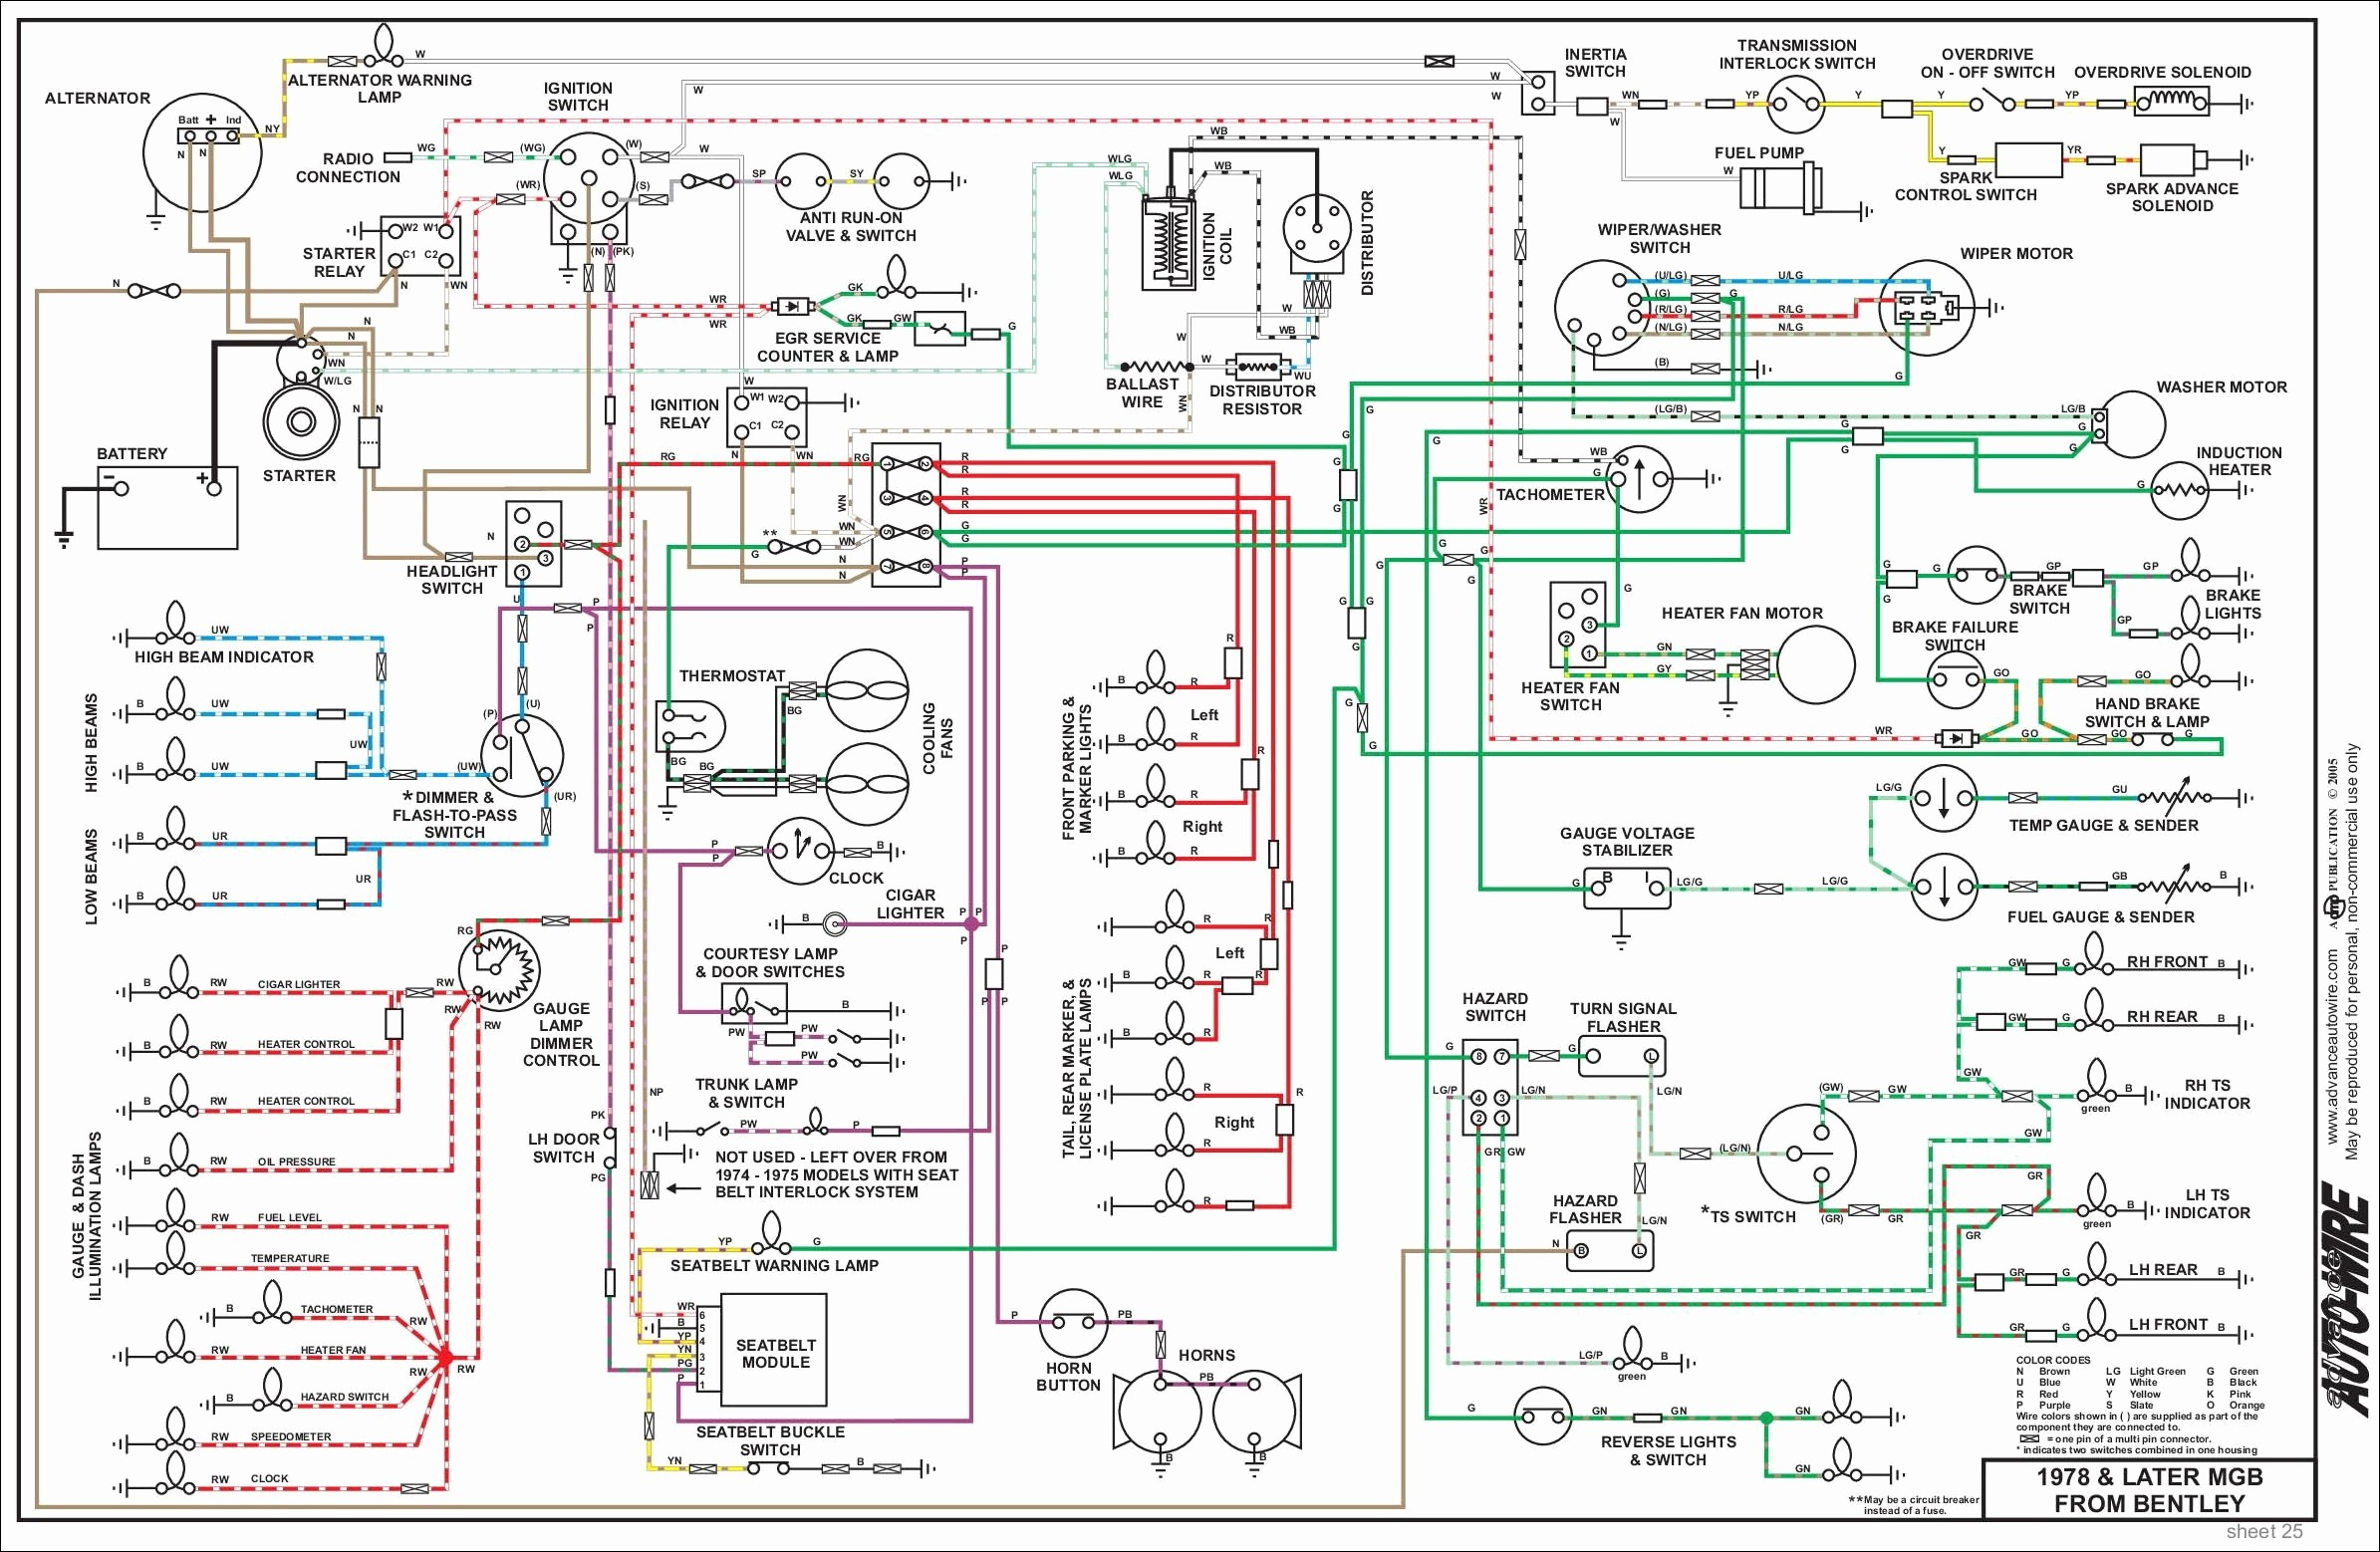 iid wiring diagram wiring diagram posts electrical wiring 1957 mg wiring  diagram simple wiring diagram shematics